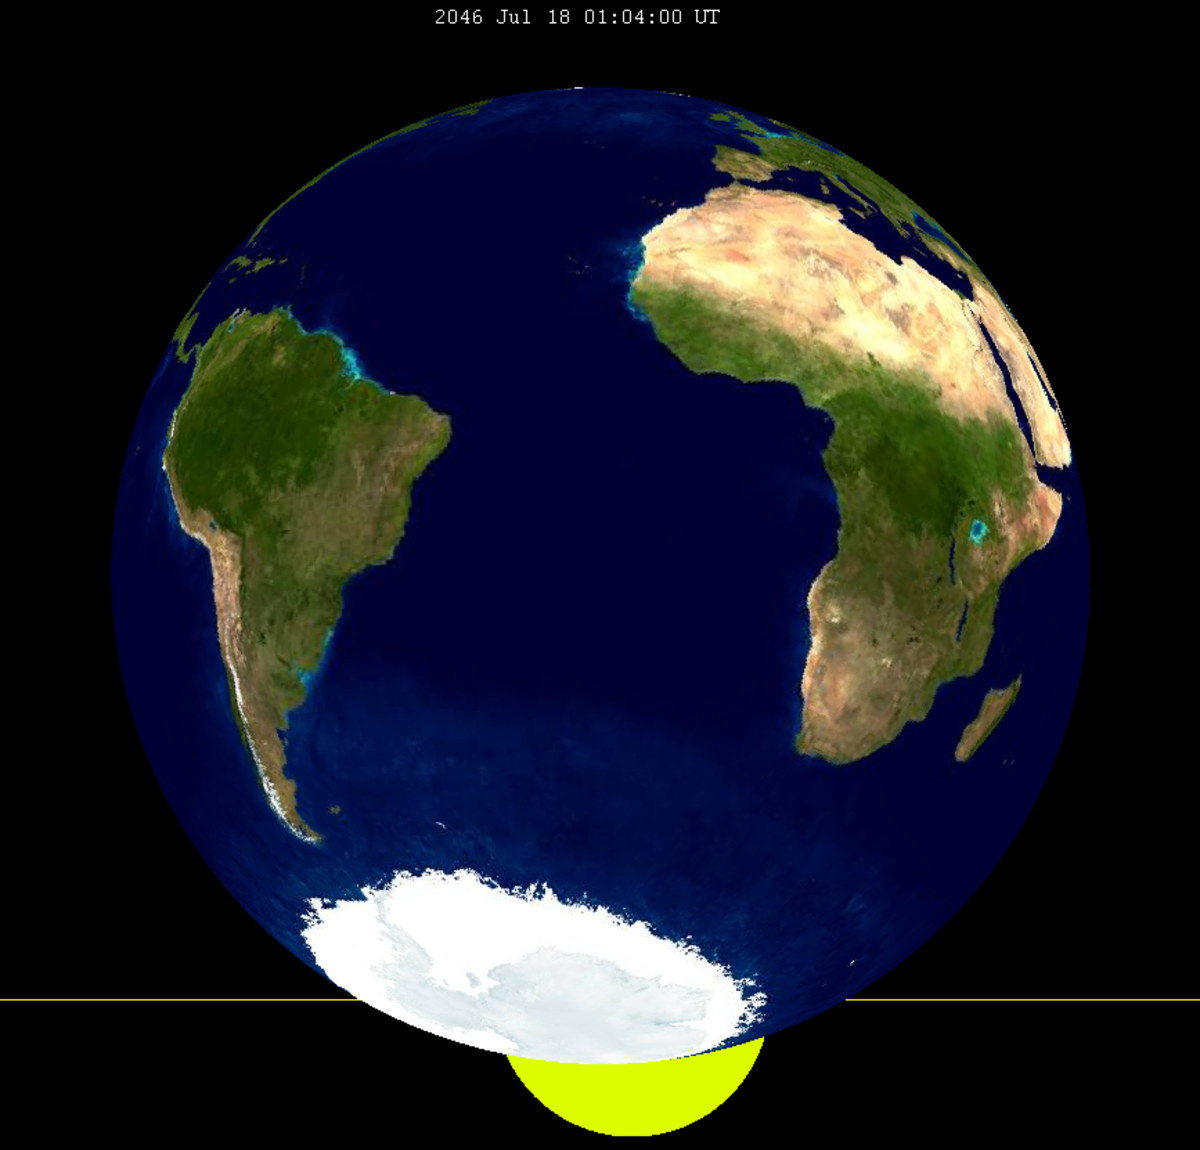 Lunar eclipse from moon-2046Jul18.png